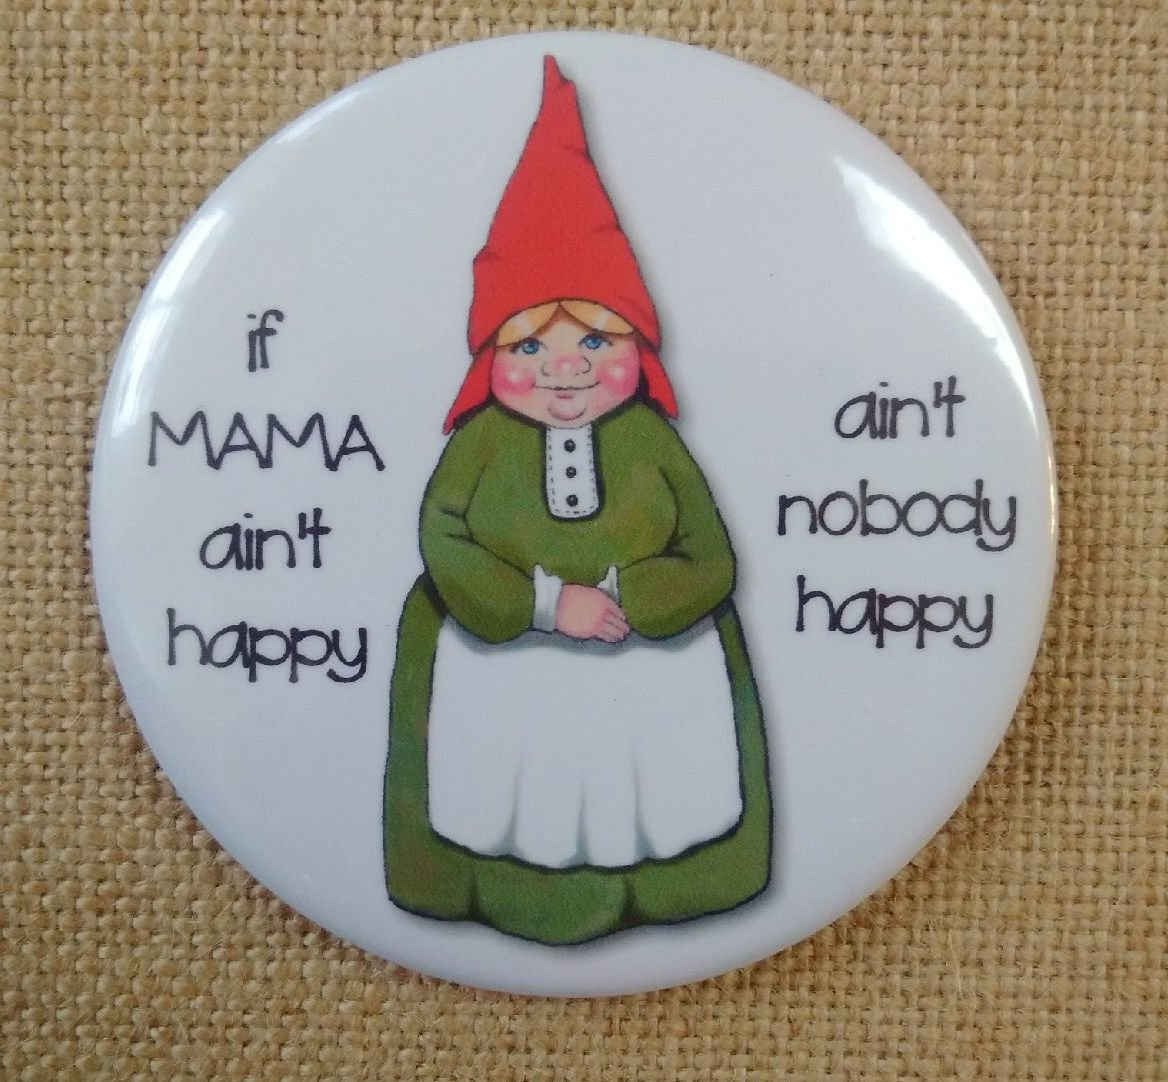 Magnet: 3.5', If Mama Ain't Happy Ain't Nobody Happy, Drawing of Gnome Lady, Humour If Mama Ain' t Happy Ain' t Nobody Happy